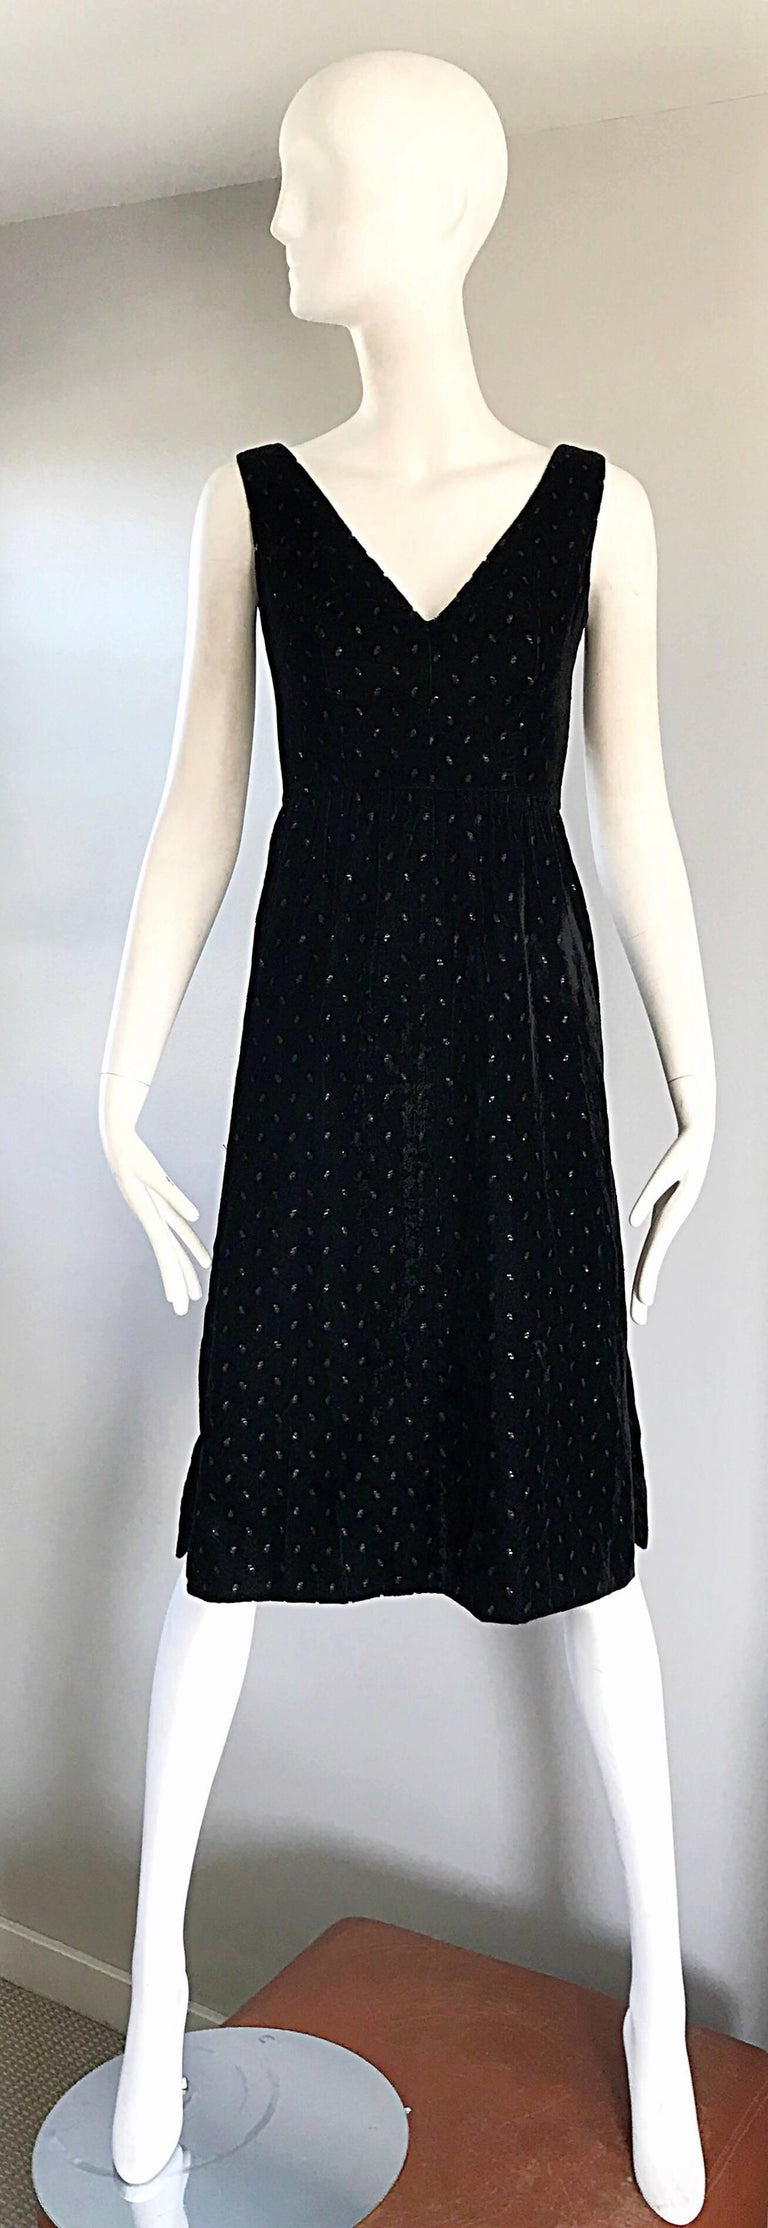 Beautiful 1960s ANDRE COURREGES black velvet A-line metallic dress! Luxurious lightweight black velvet, with metallic sparkles scattered throughout. Slits on each side of the hem. Fully lined. Couture quality one would expect from this hard to find